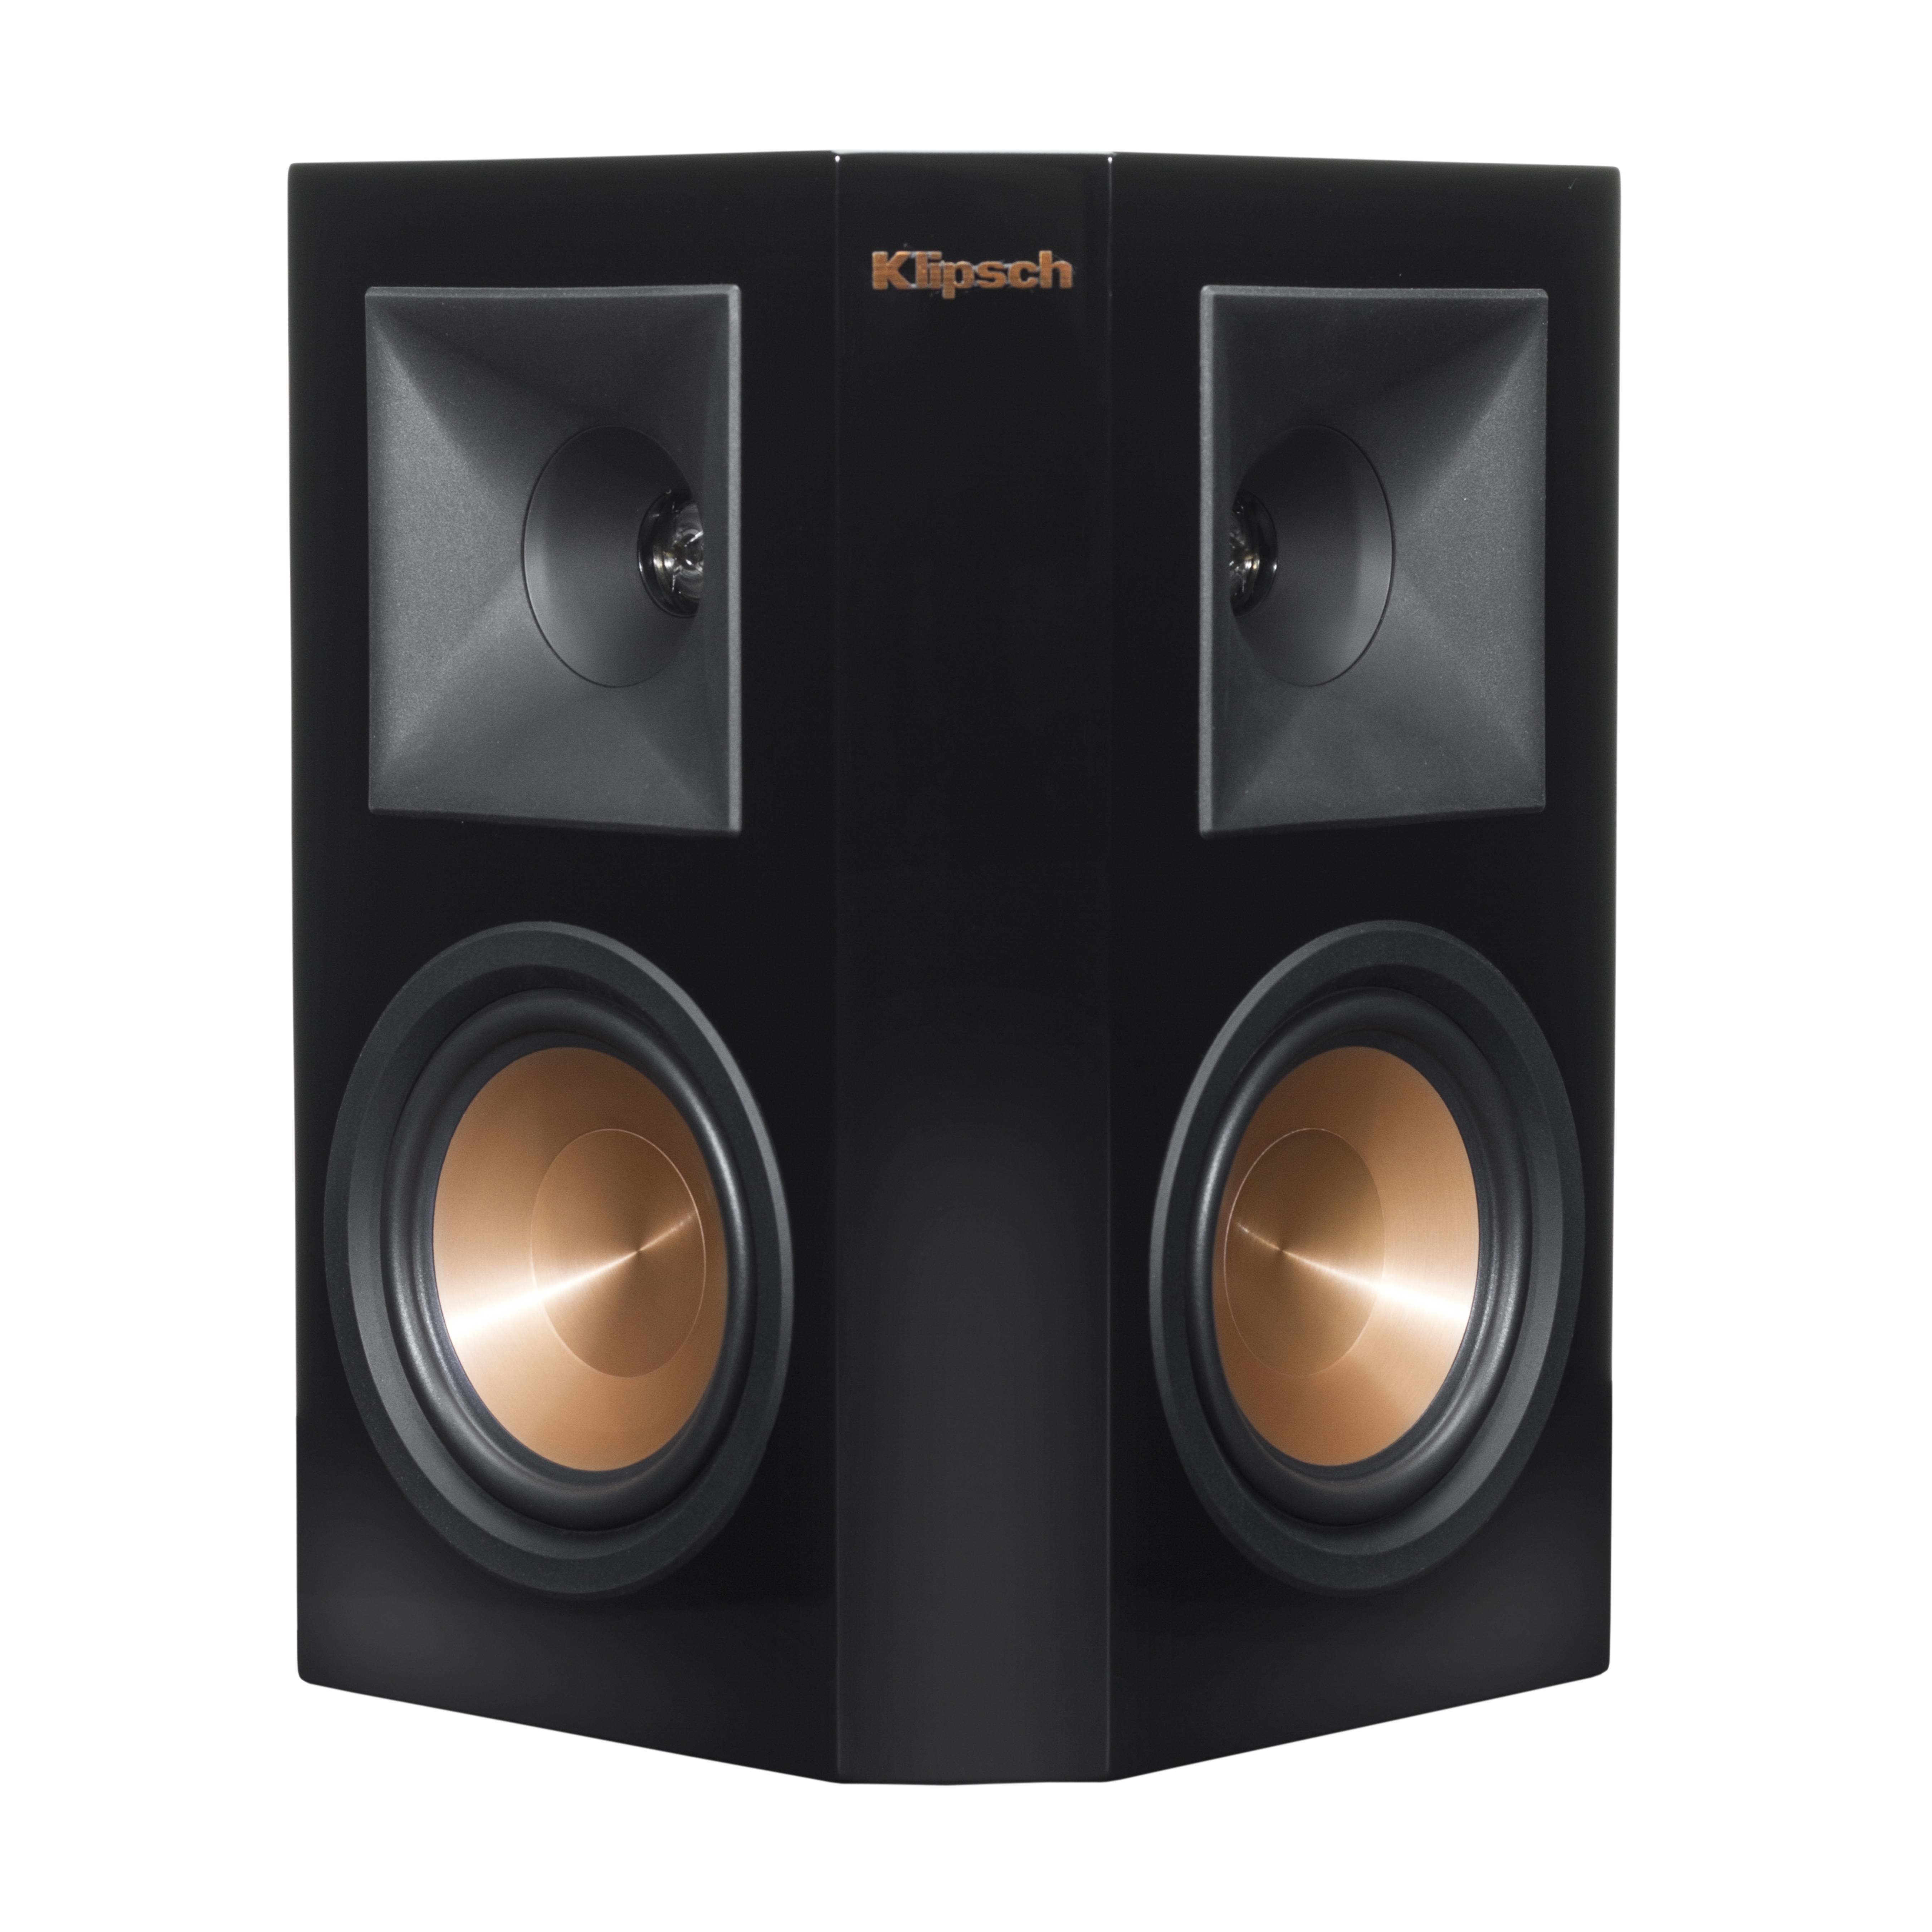 Rp 250 S Piano Black Front